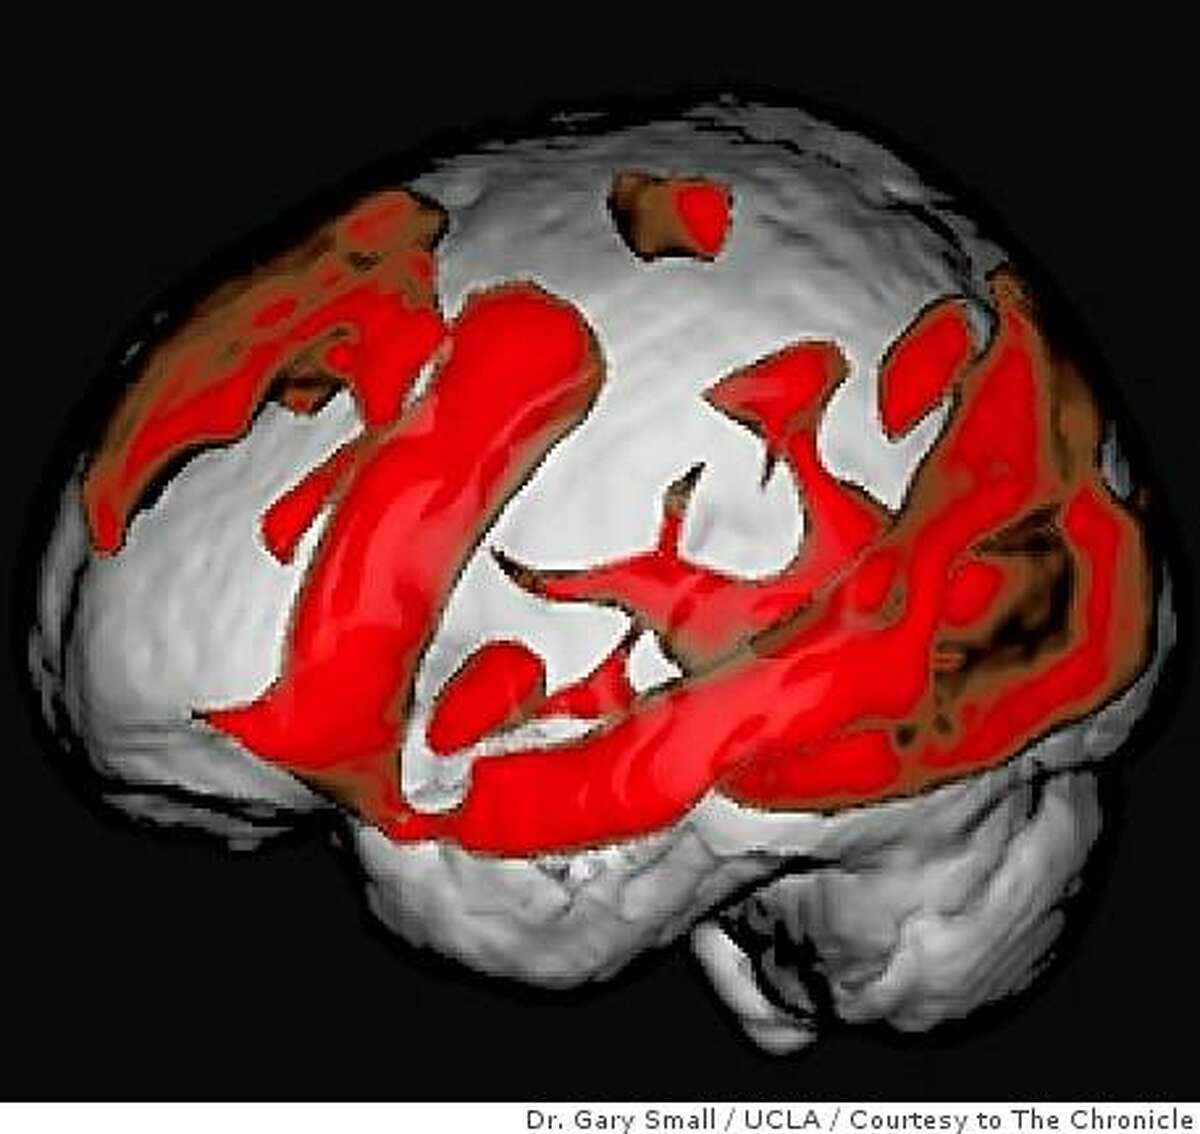 MRI image of an older brain during a web search. From study conducted by Dr. Gary Small, UCLA.